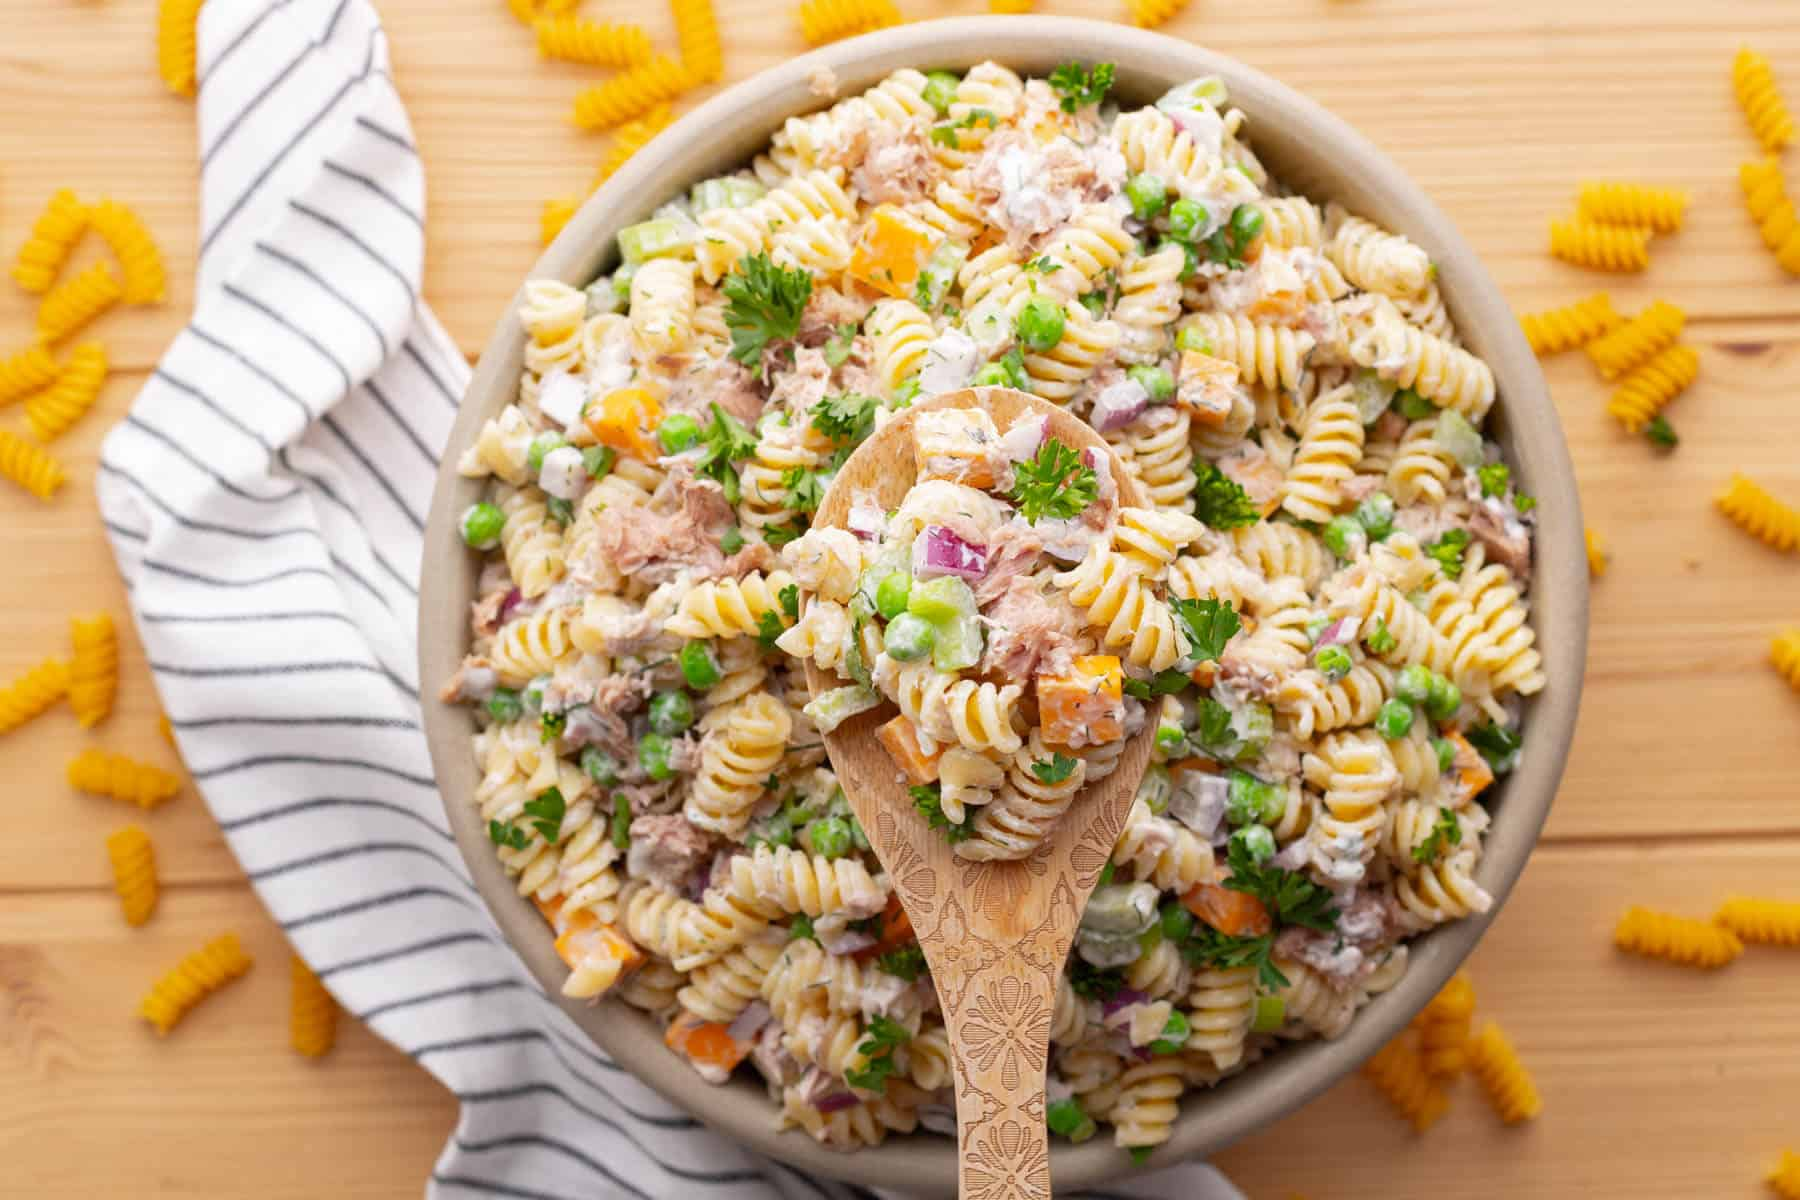 A wooden spoon holds tuna pasta salad above a bowl filled with the same salad.